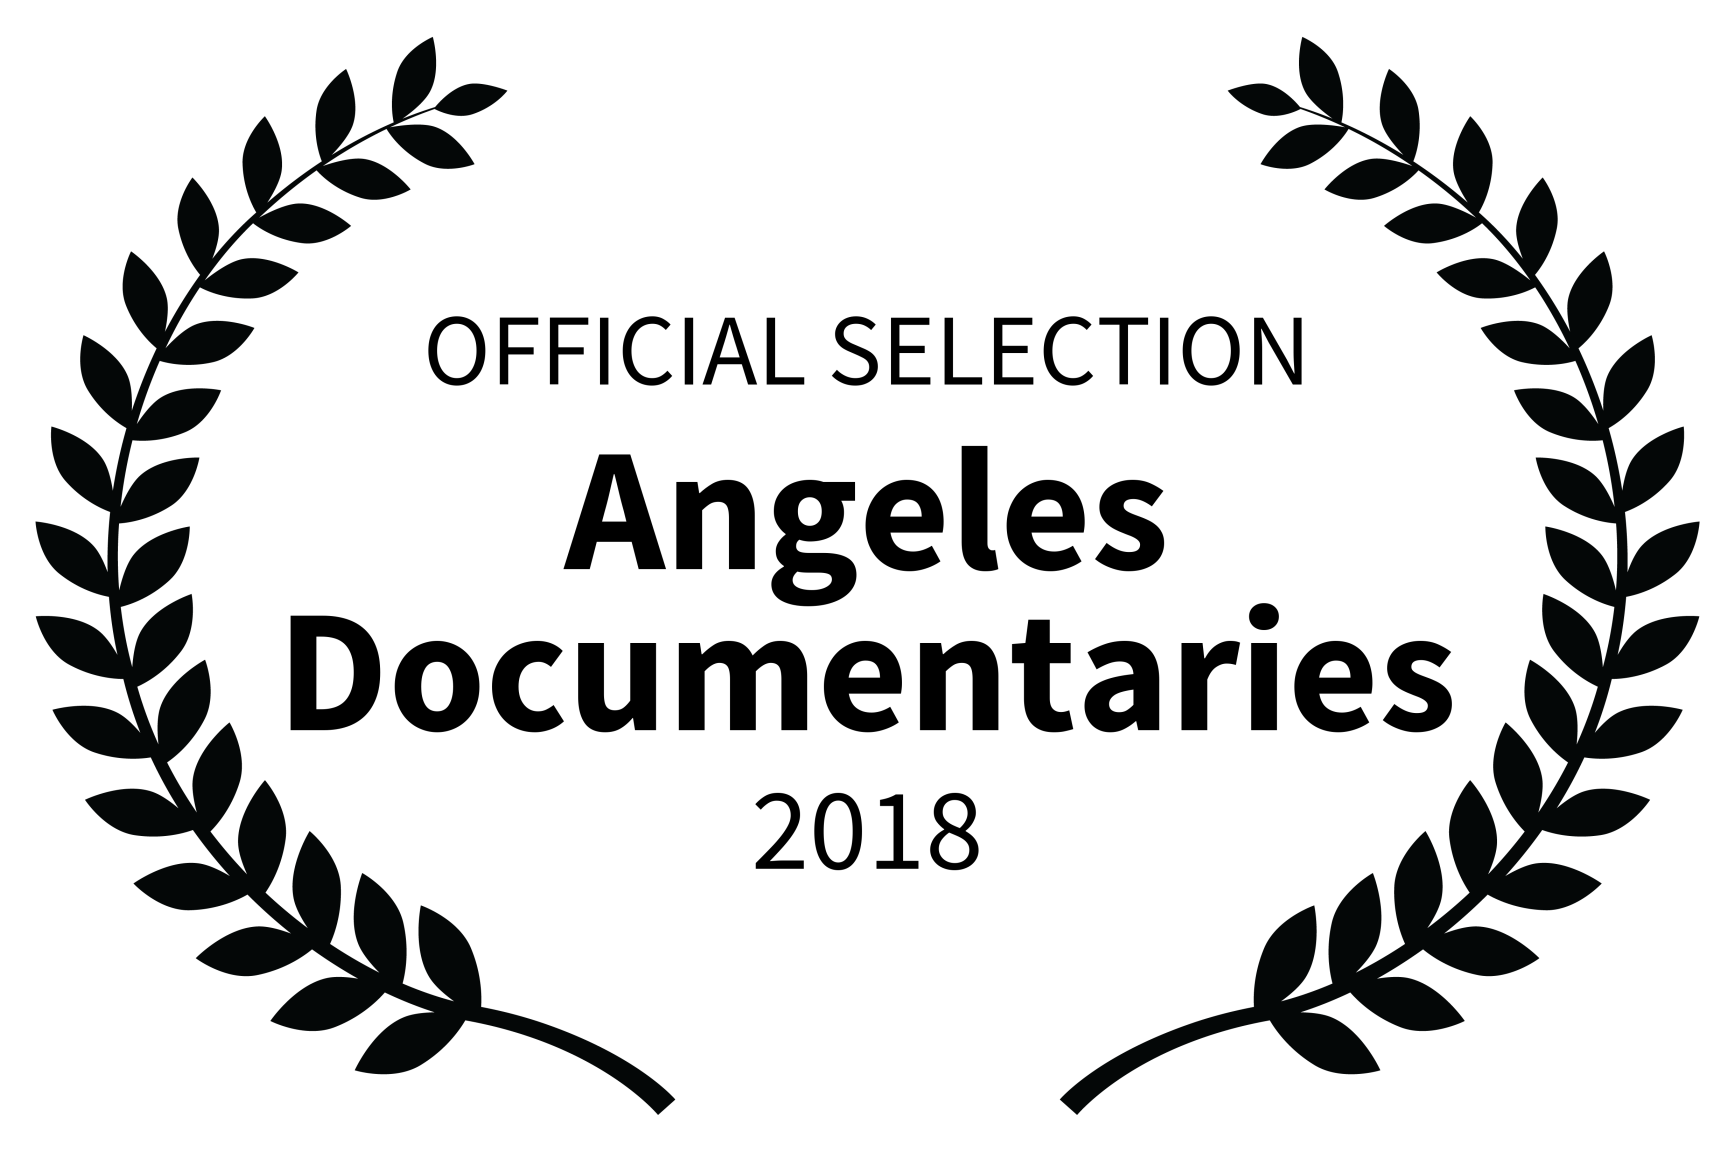 OFFICIAL SELECTION - Angeles Documentari